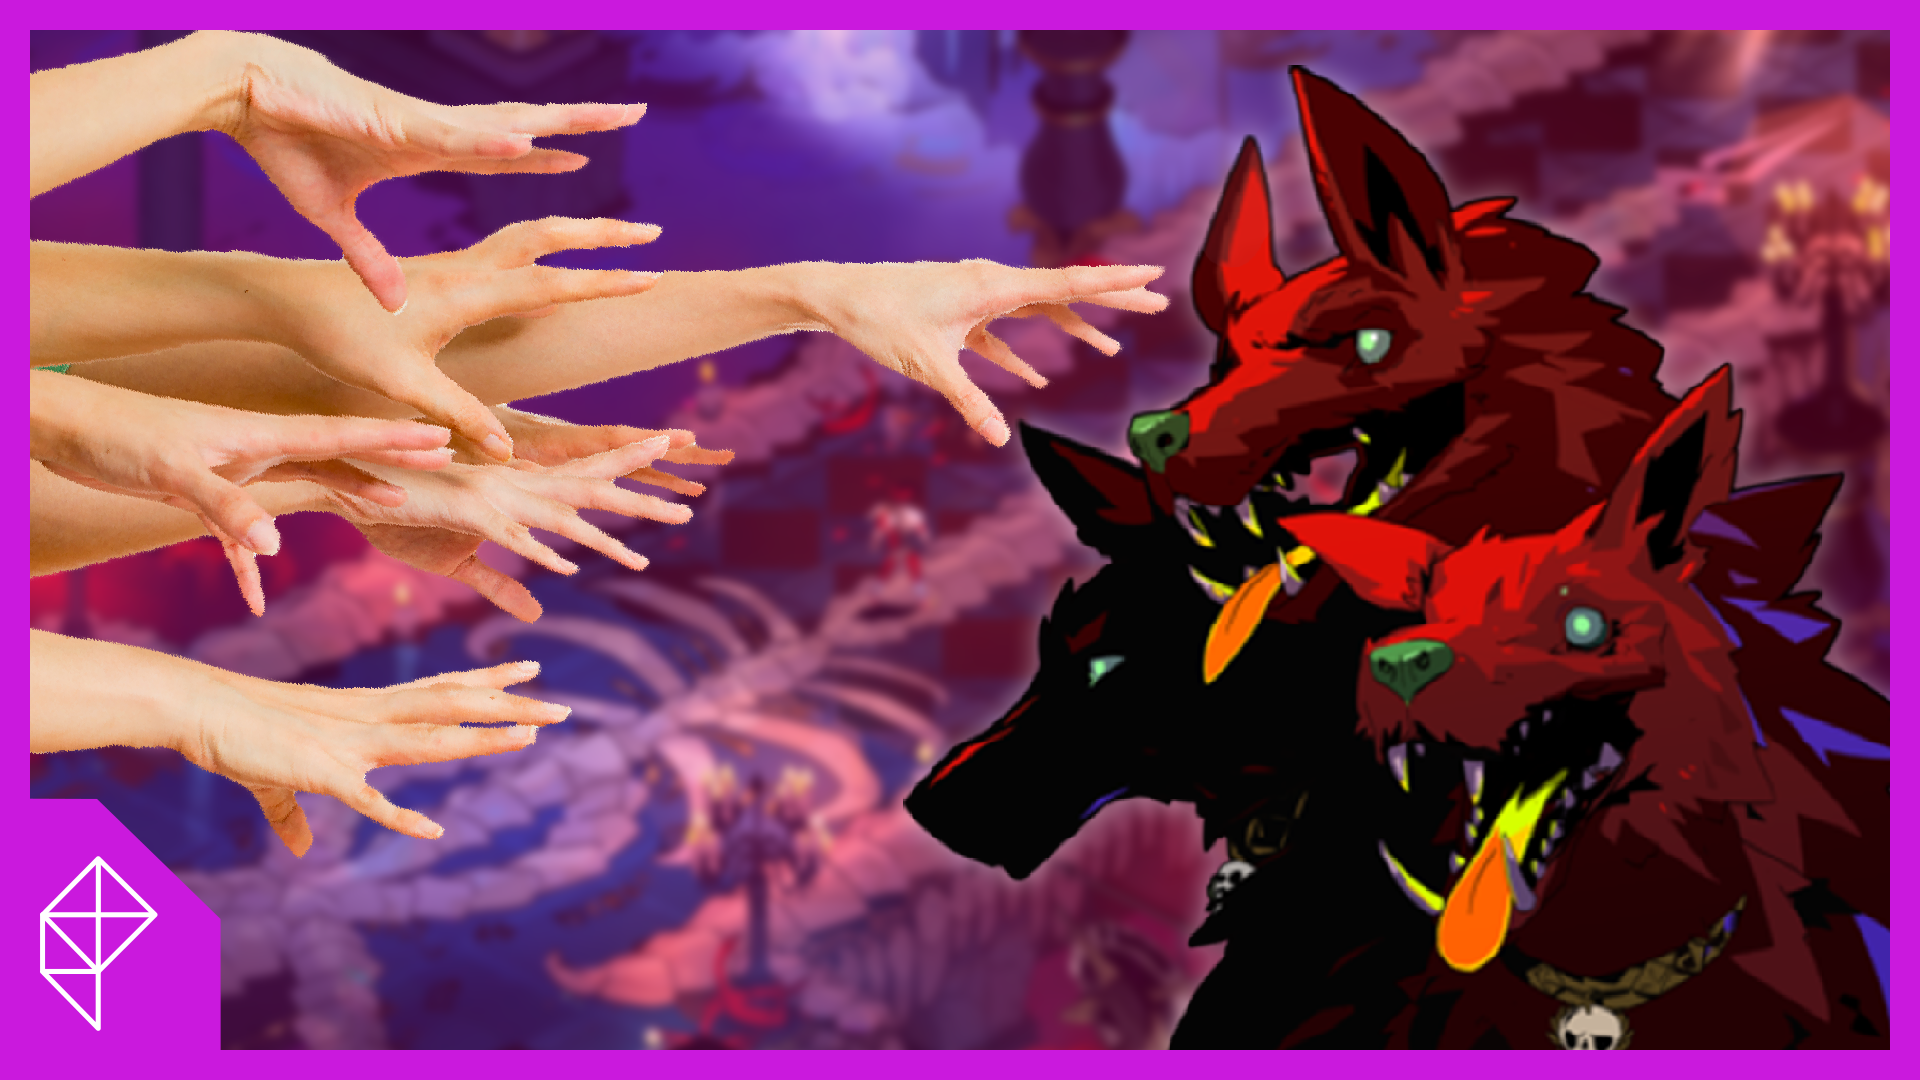 A cluster of hands reaching out to pet Cerberus, from the game Hades